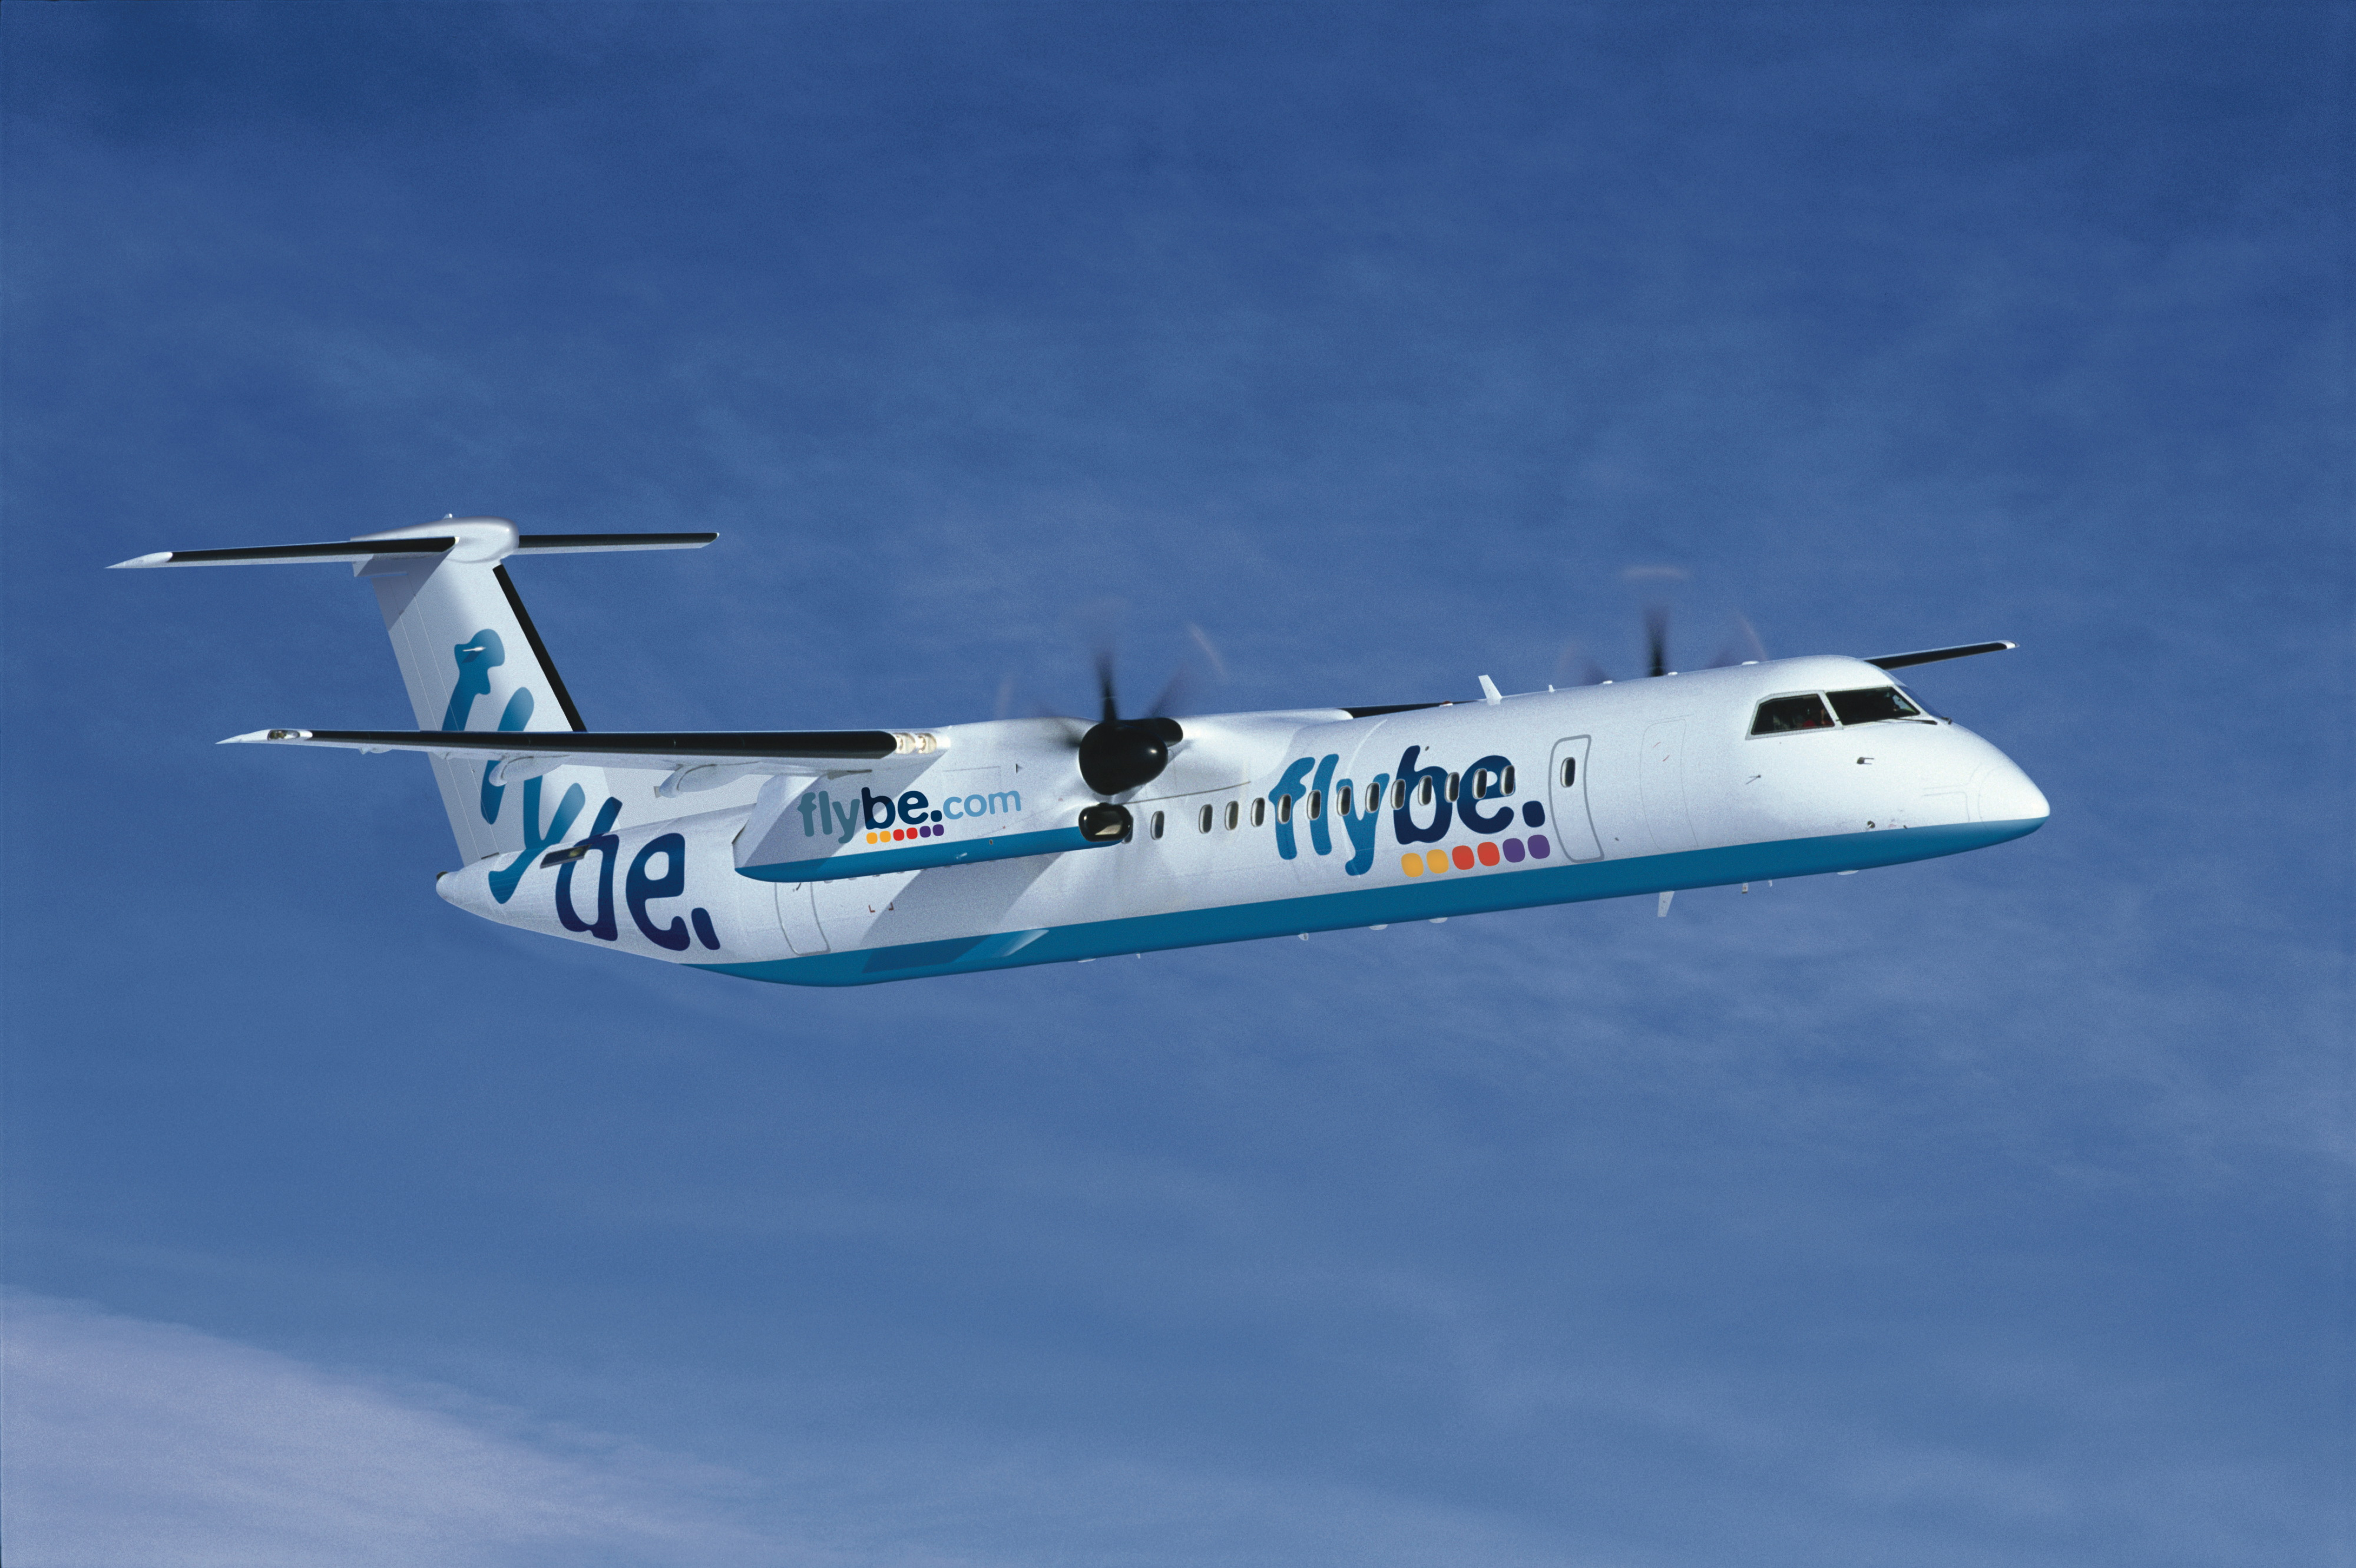 Flybe And Ftejerez Announce Part Sponsored Airline Pilot